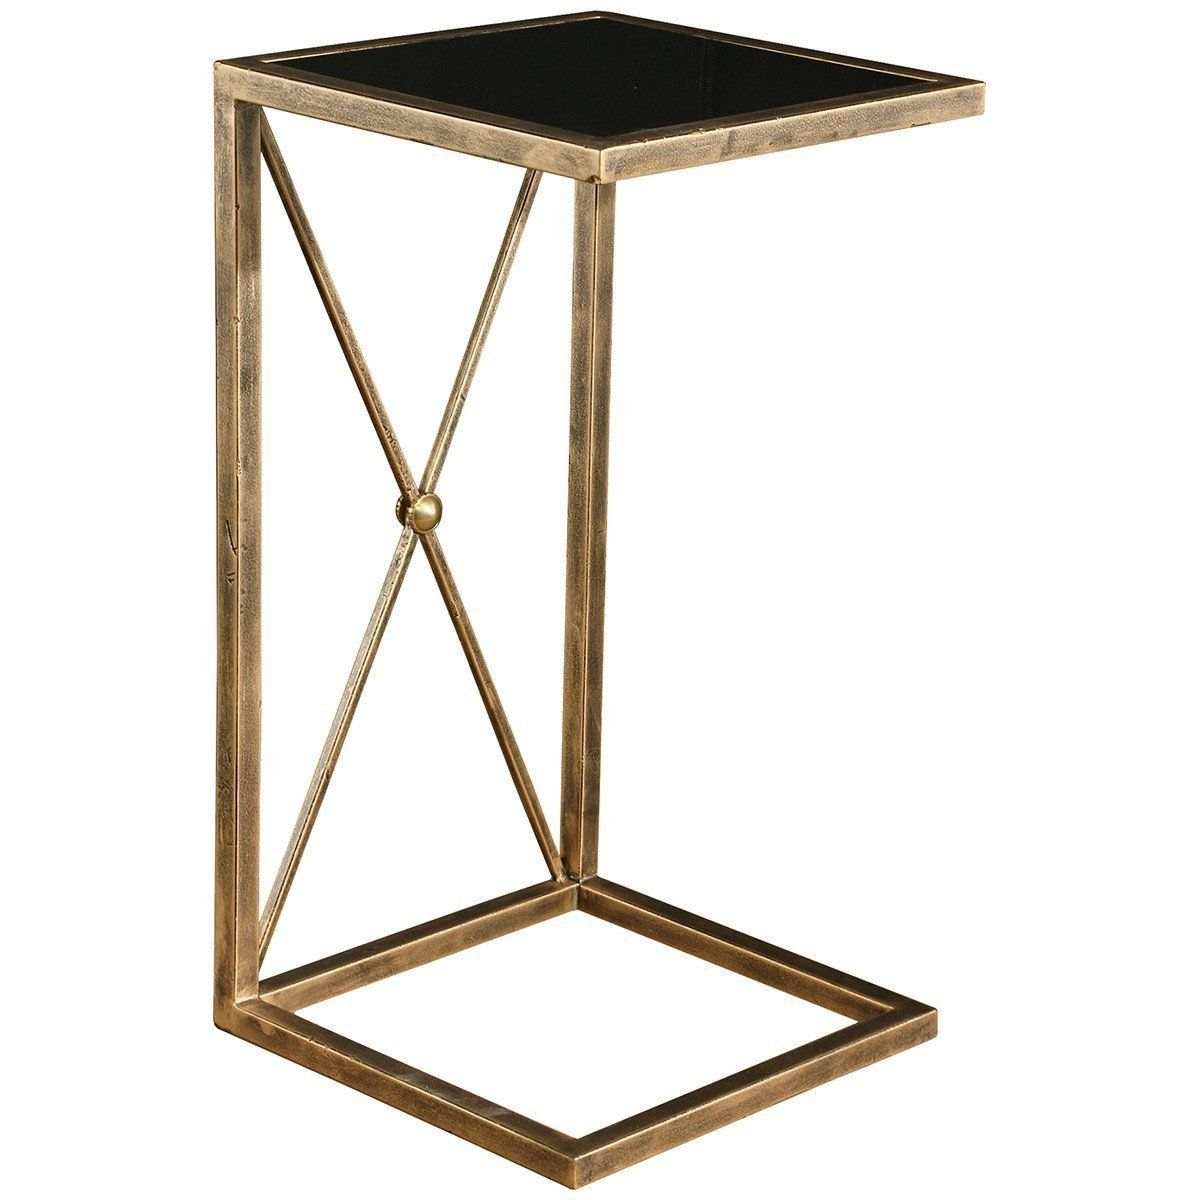 uttermost zafina gold side table products duke accent pottery barn homesense lamps west elm desk metal door threshold round glass nest tables tiny corner outdoor coffee with ice